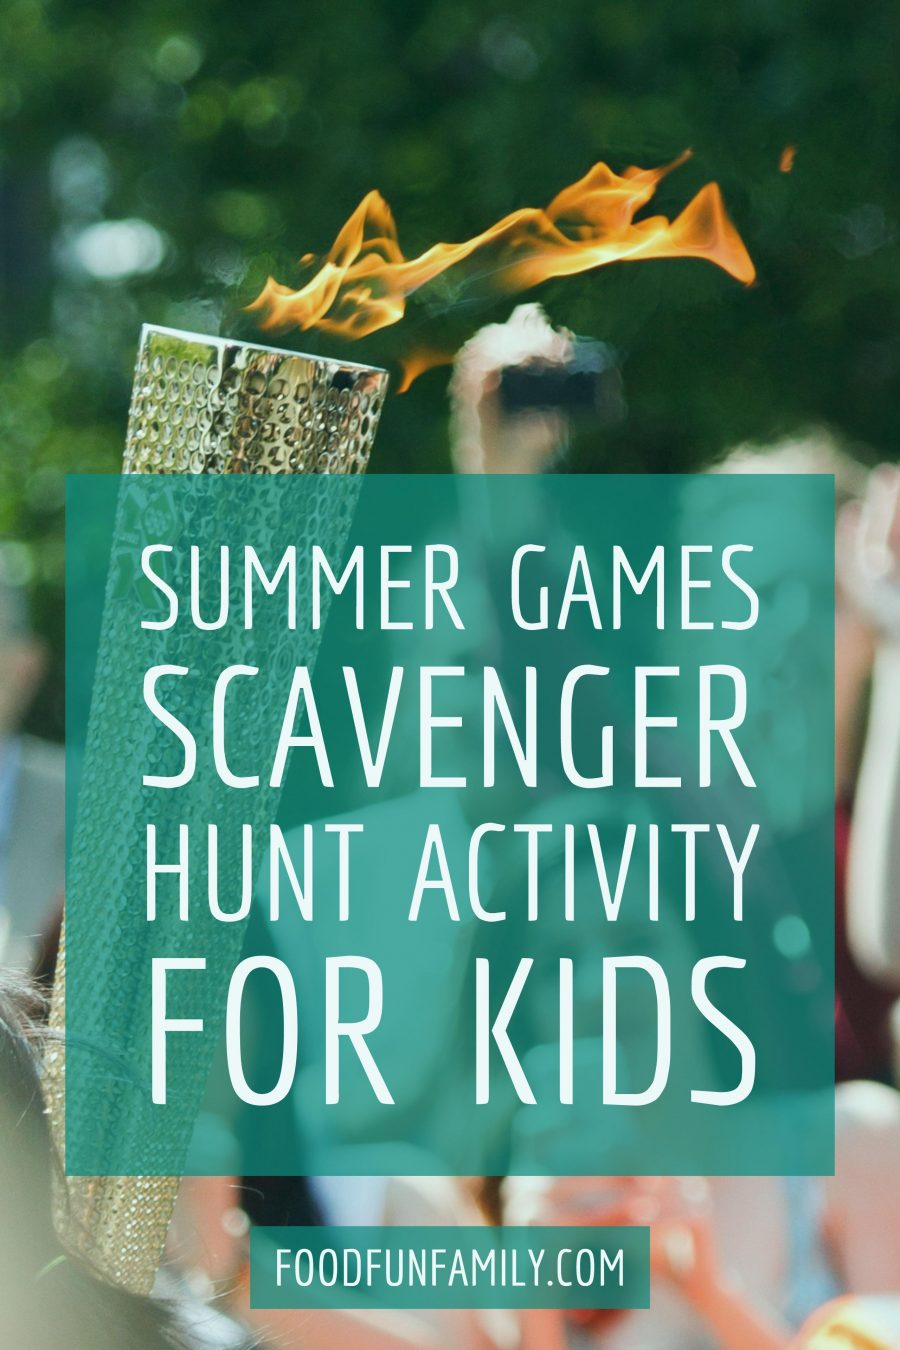 Summer Games Scavenger Hunt activity for kids